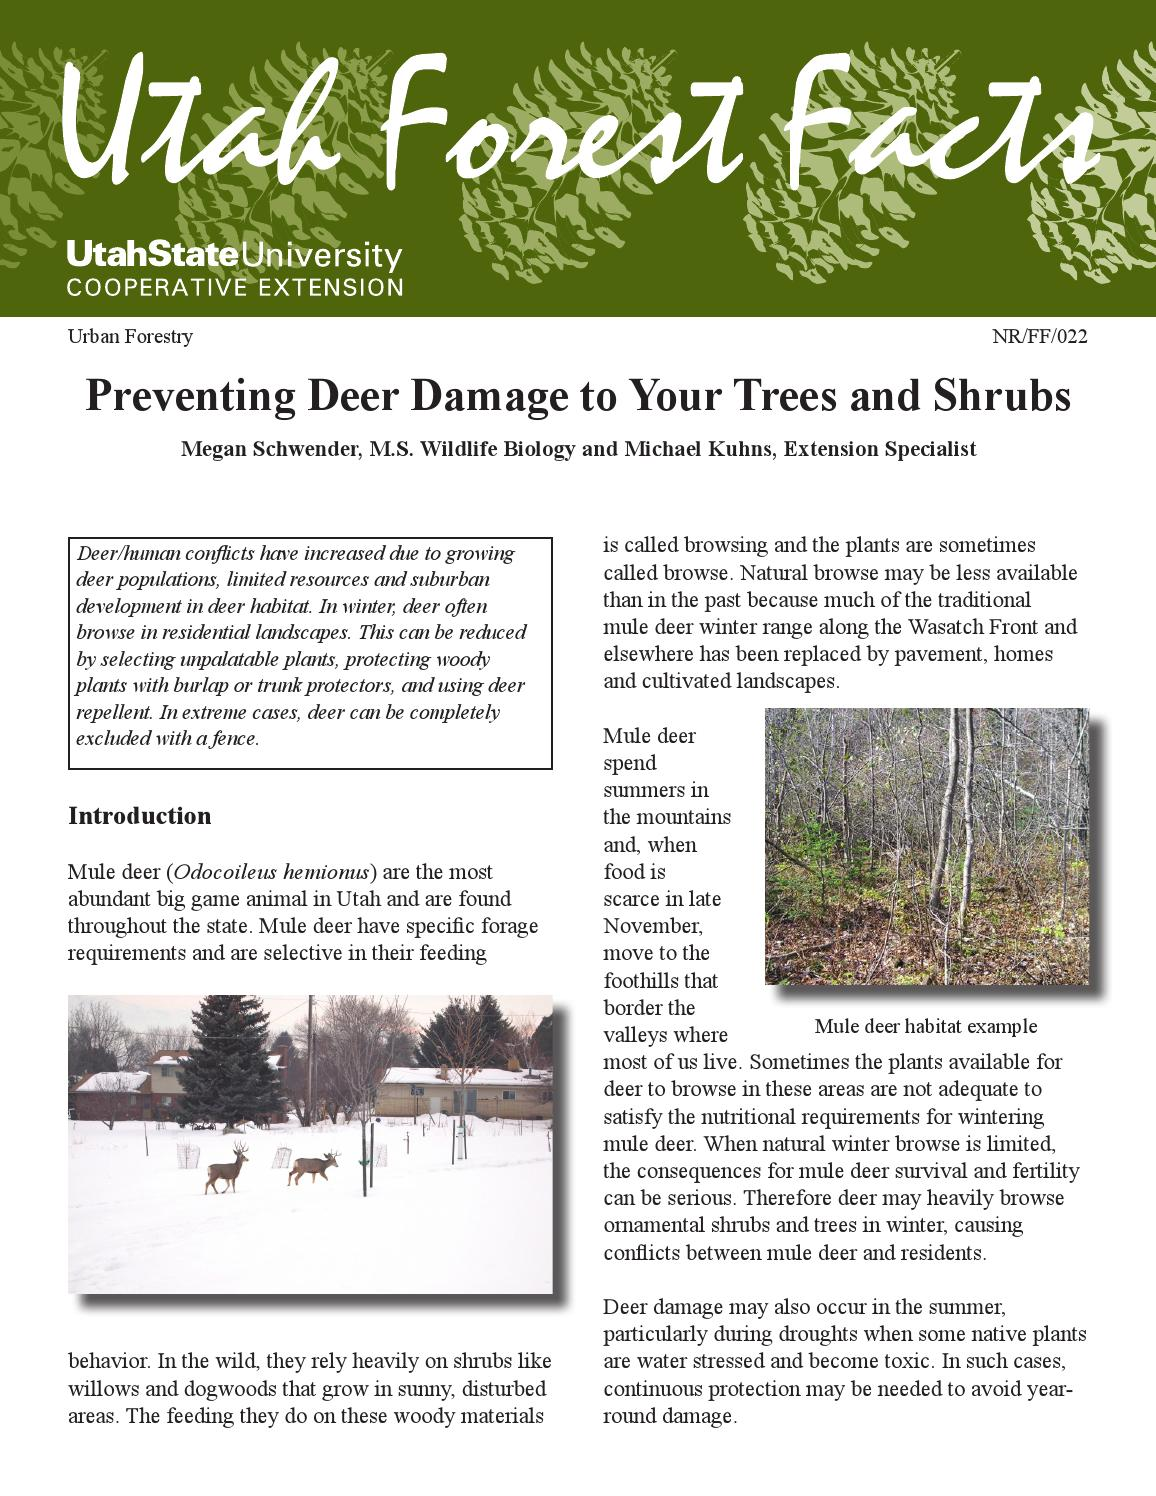 ornamental bamboo fence.htm preventing deer tree damage by utah state university extension issuu  preventing deer tree damage by utah